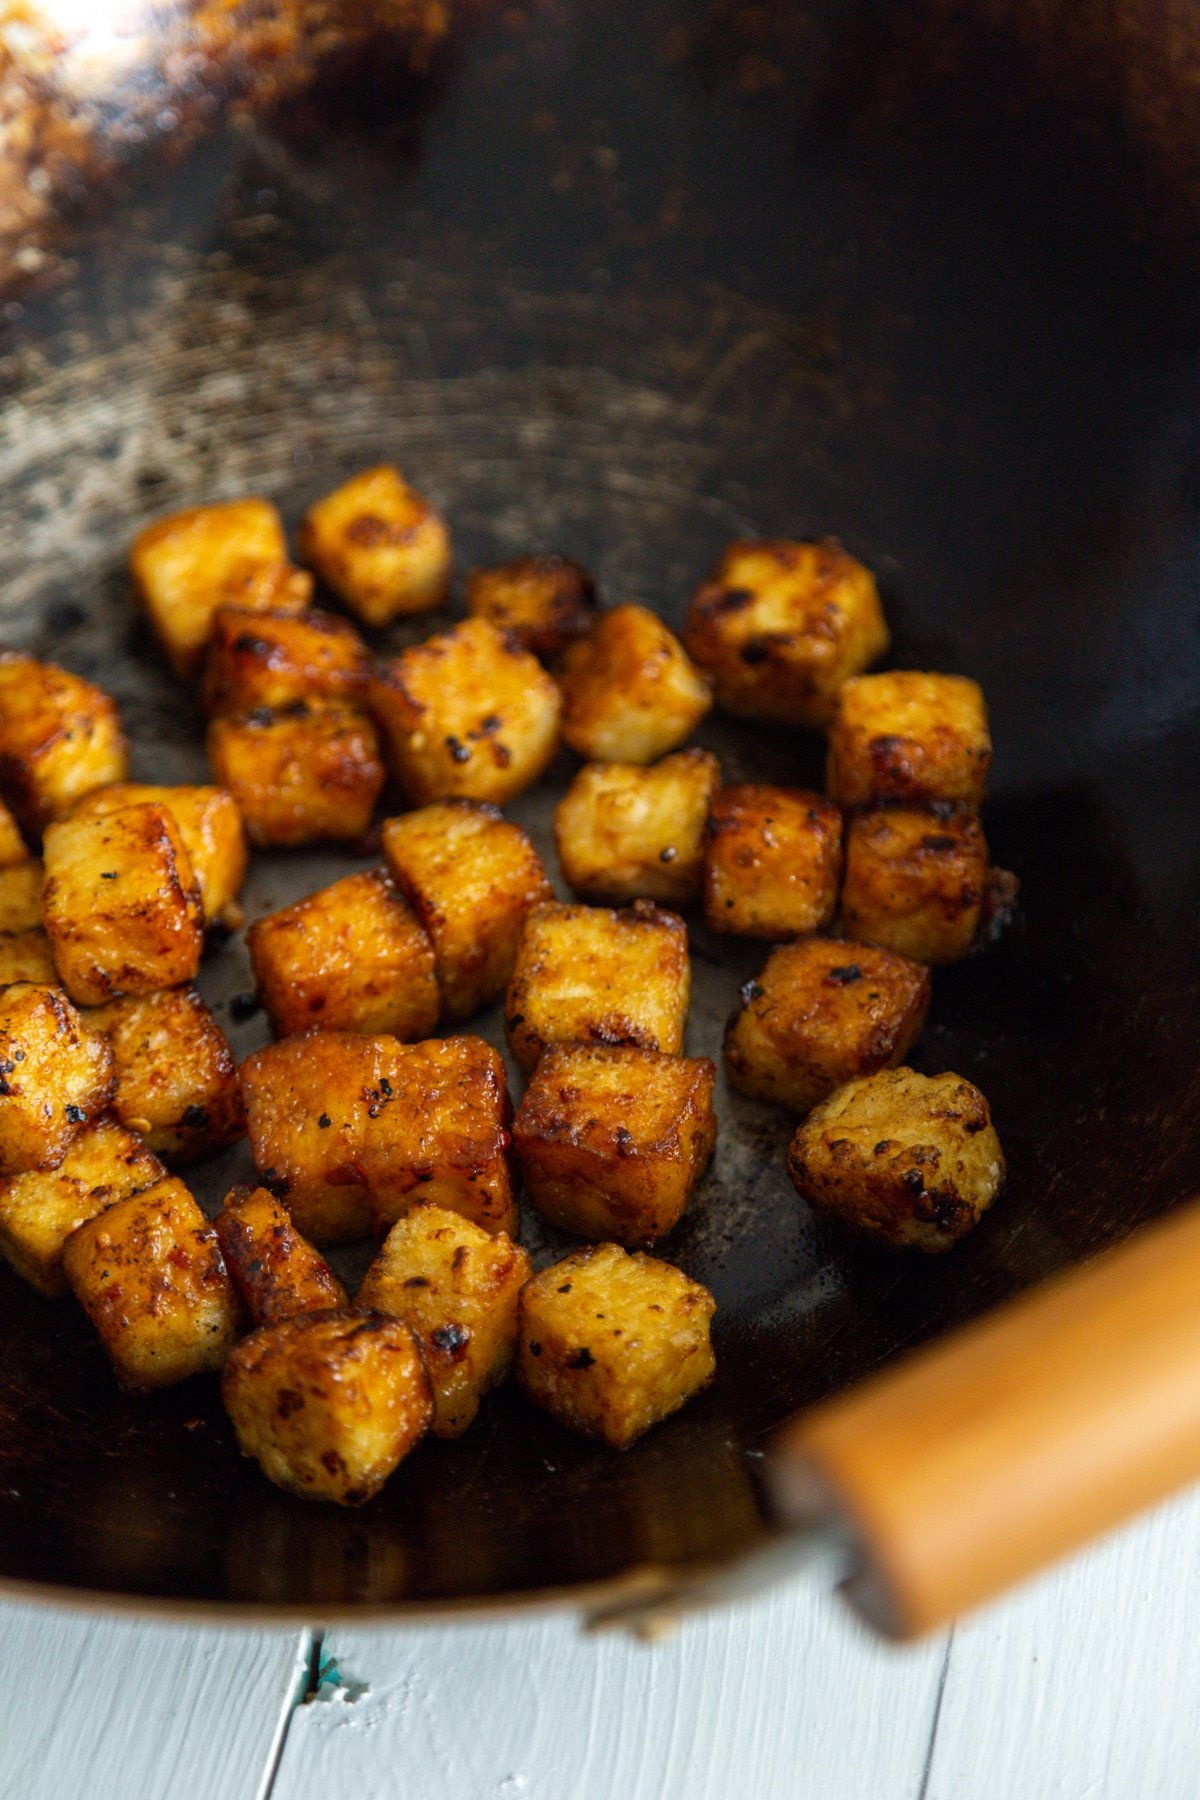 A close up picture of cubed fried tofu in a wok with wooden handles.